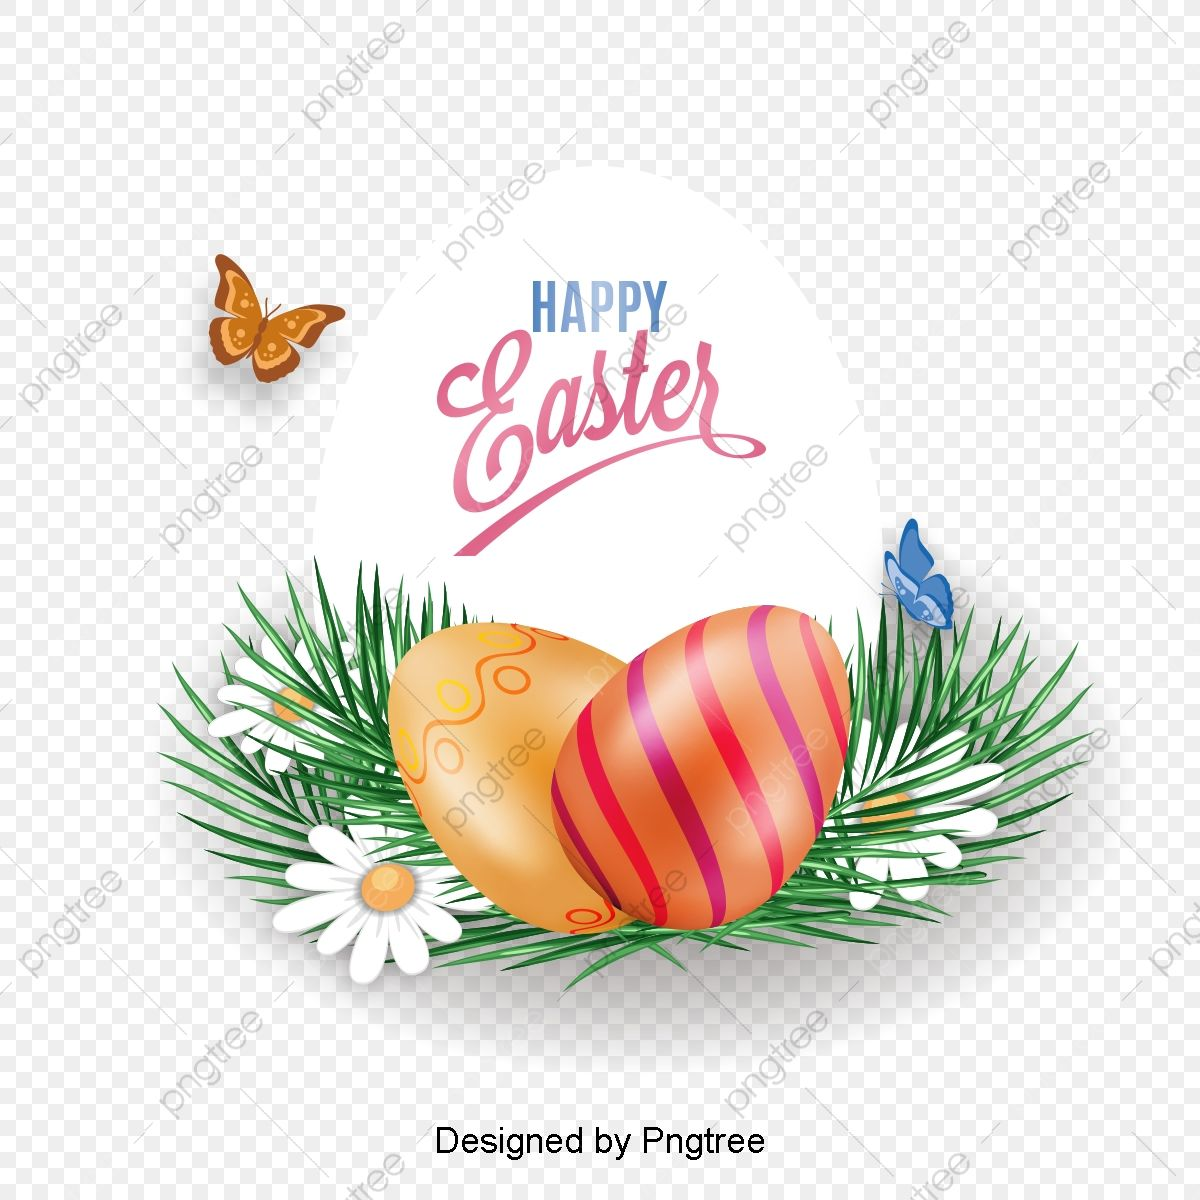 Vector Painted Easter Eggs Vector Painted Easter Png Transparent Clipart Image And Psd File For Free Download Easter Egg Painting Easter Pictures Clip Art